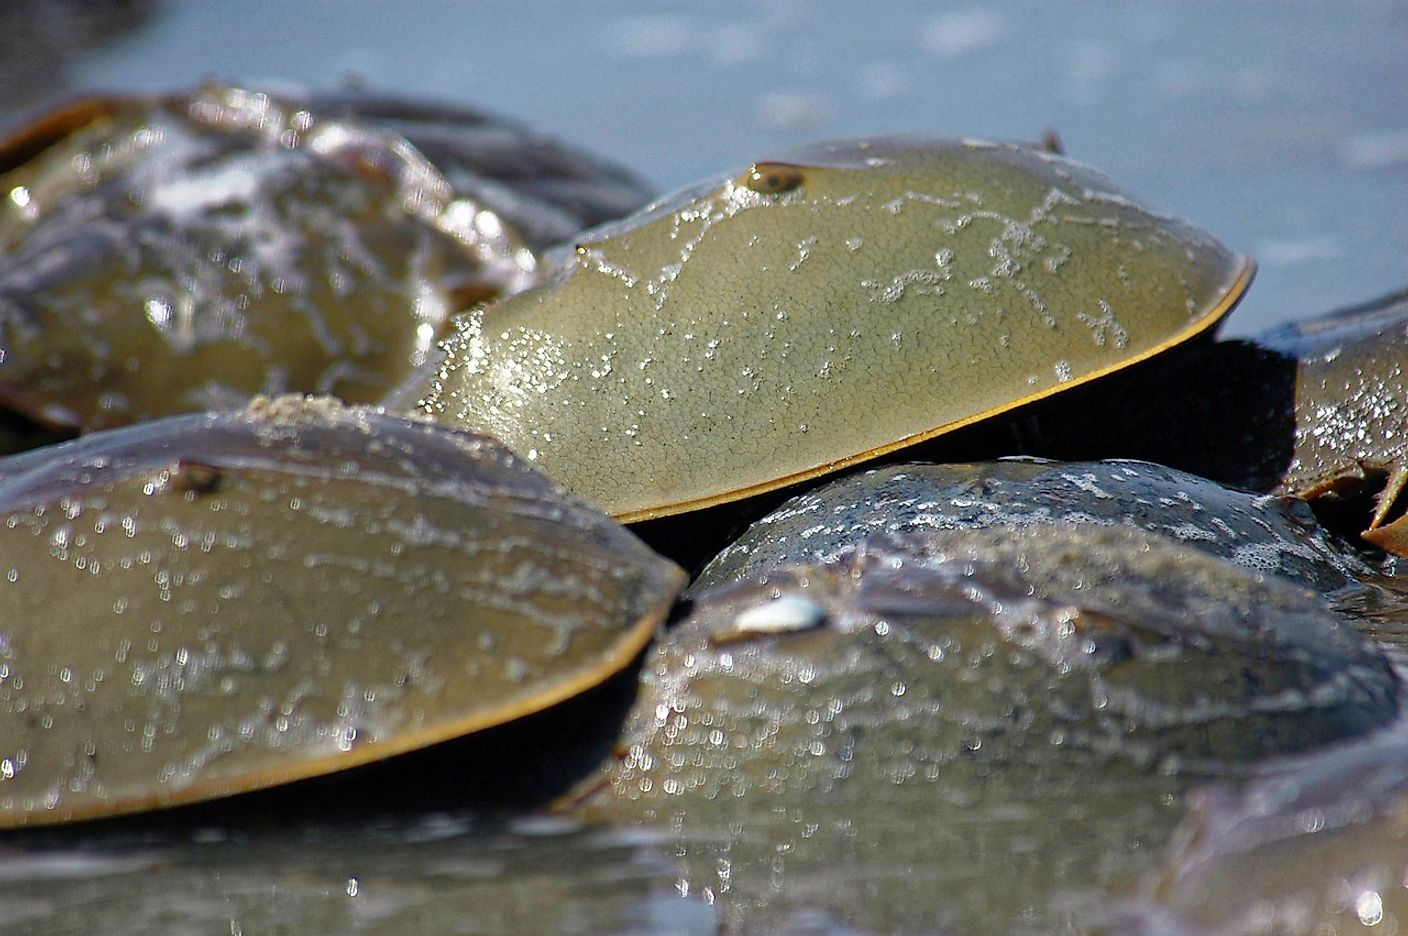 Though they may resemble crabs, Horseshoe Crabs are actually more closely related to ticks, spiders, scorpions, and mites. Photo credit: U.S. Fish and Wildlife Service, Delaware Bay Coastal Project.